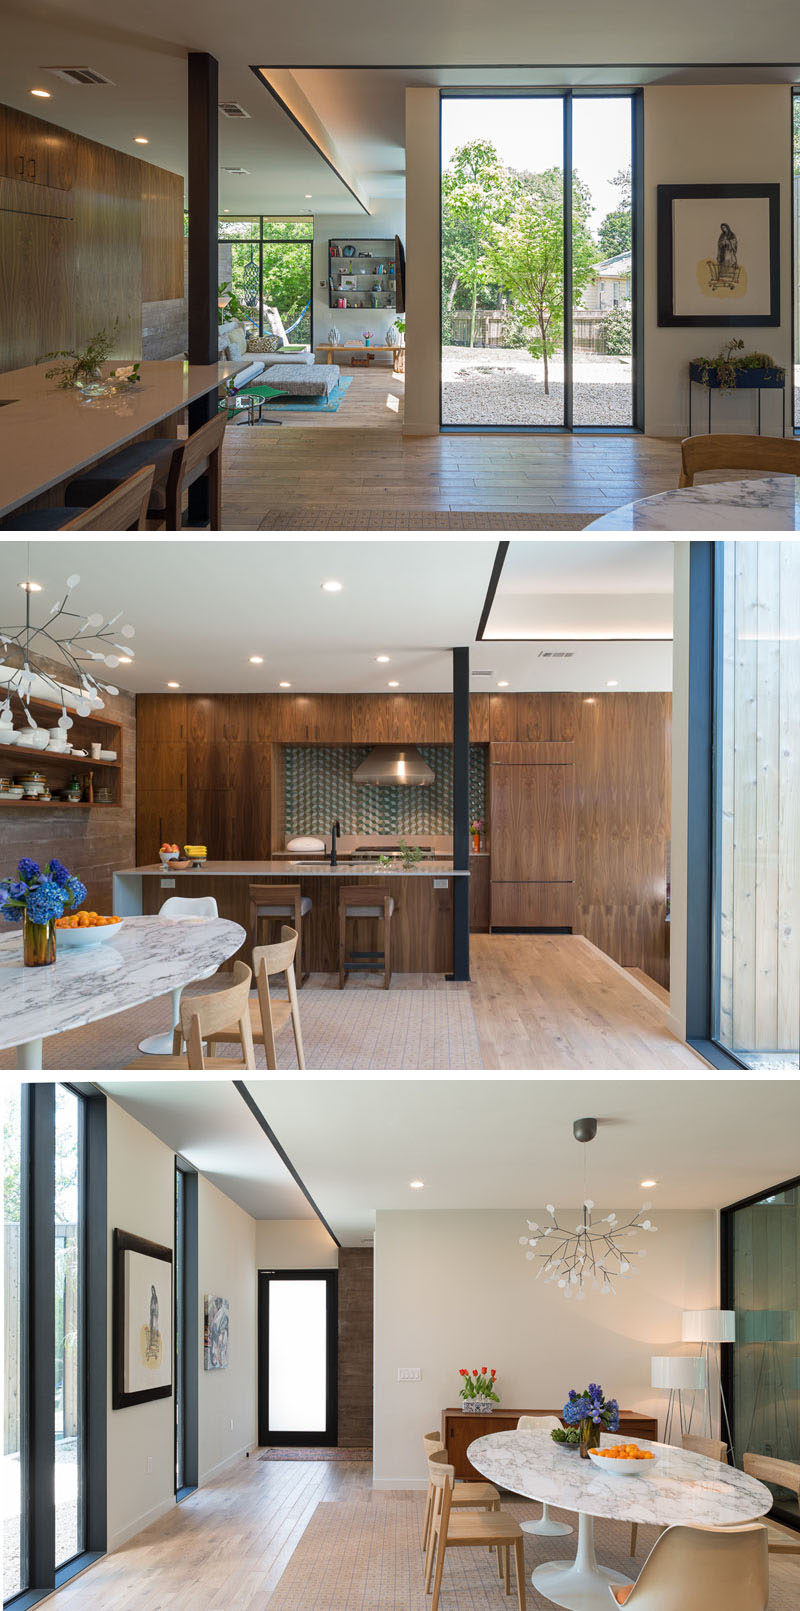 Stepped up from the living room in this house, is the kitchen and dining room. Wooden kitchen cabinets line the wall, with the island incorporating a column into its design. A sculptural chandelier helps to anchor the dining area in the space.